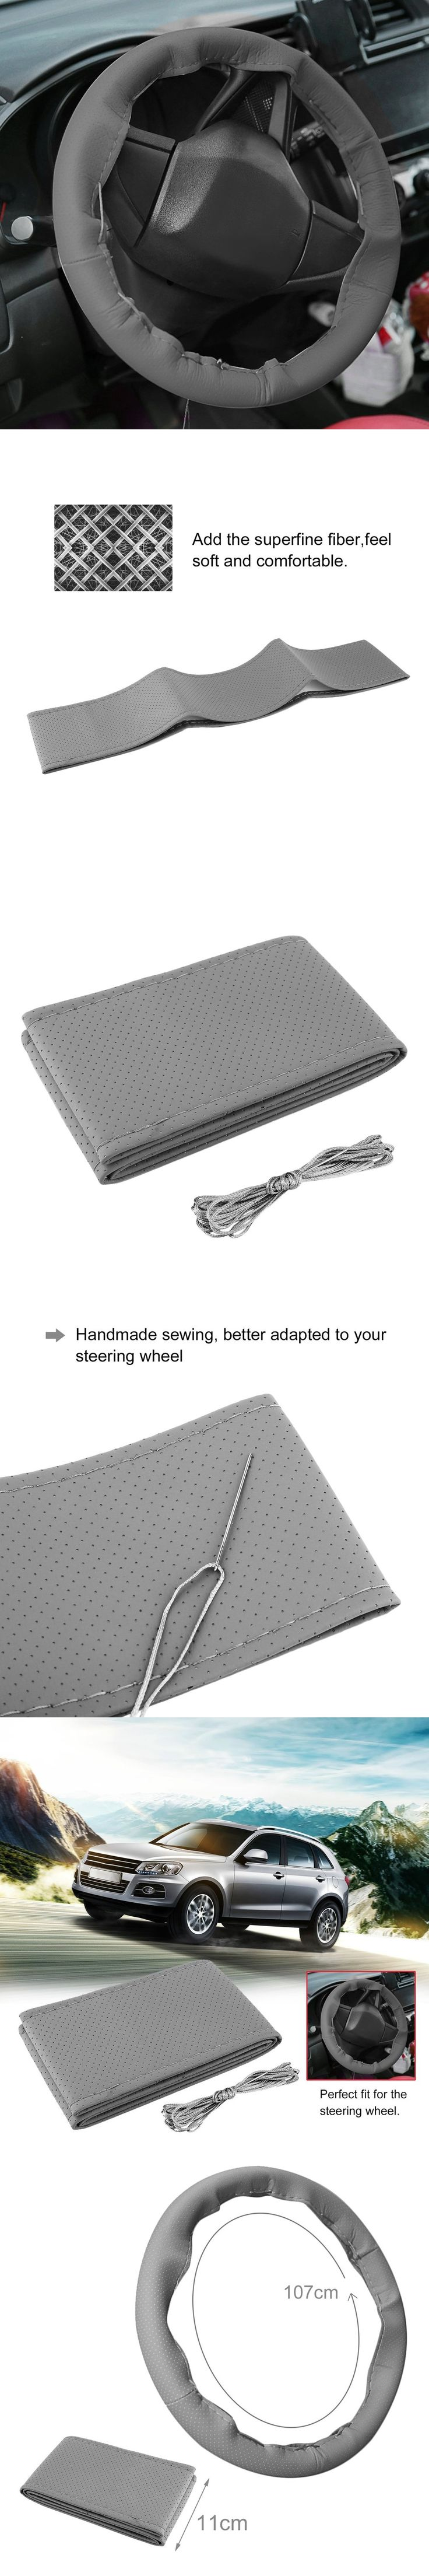 2017 3 Color DIY Texture Soft Auto Car Steering Wheel Cover With Needles And Thread Artificial Leather Car Covers Suite